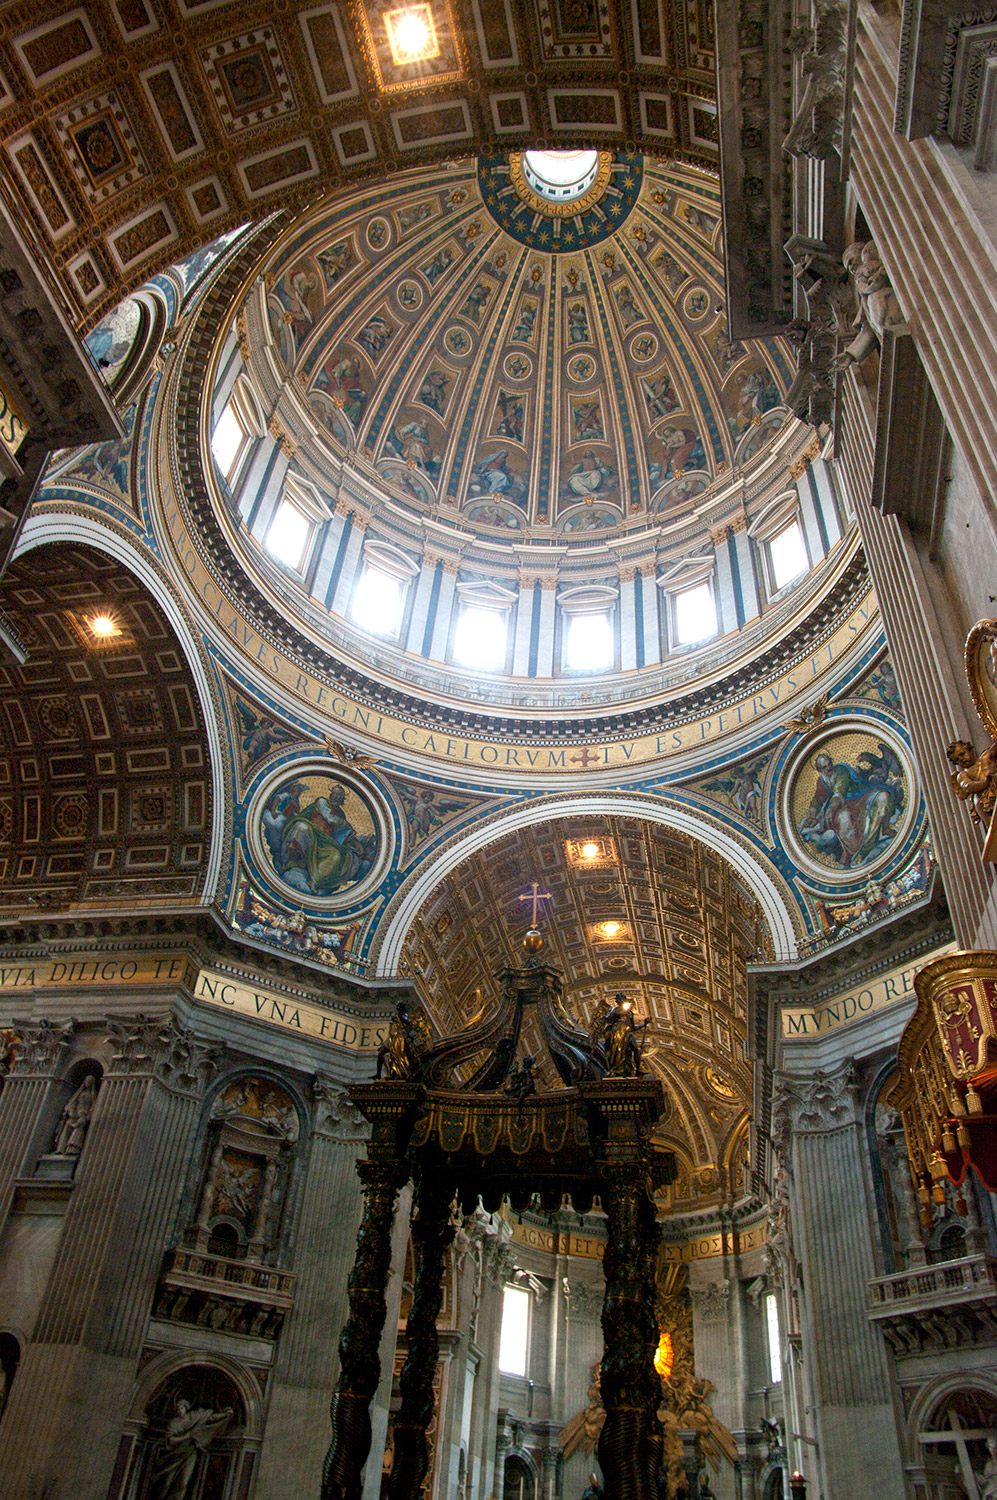 Inside St. Peter's Basilica in Vatican City, Rome Italy